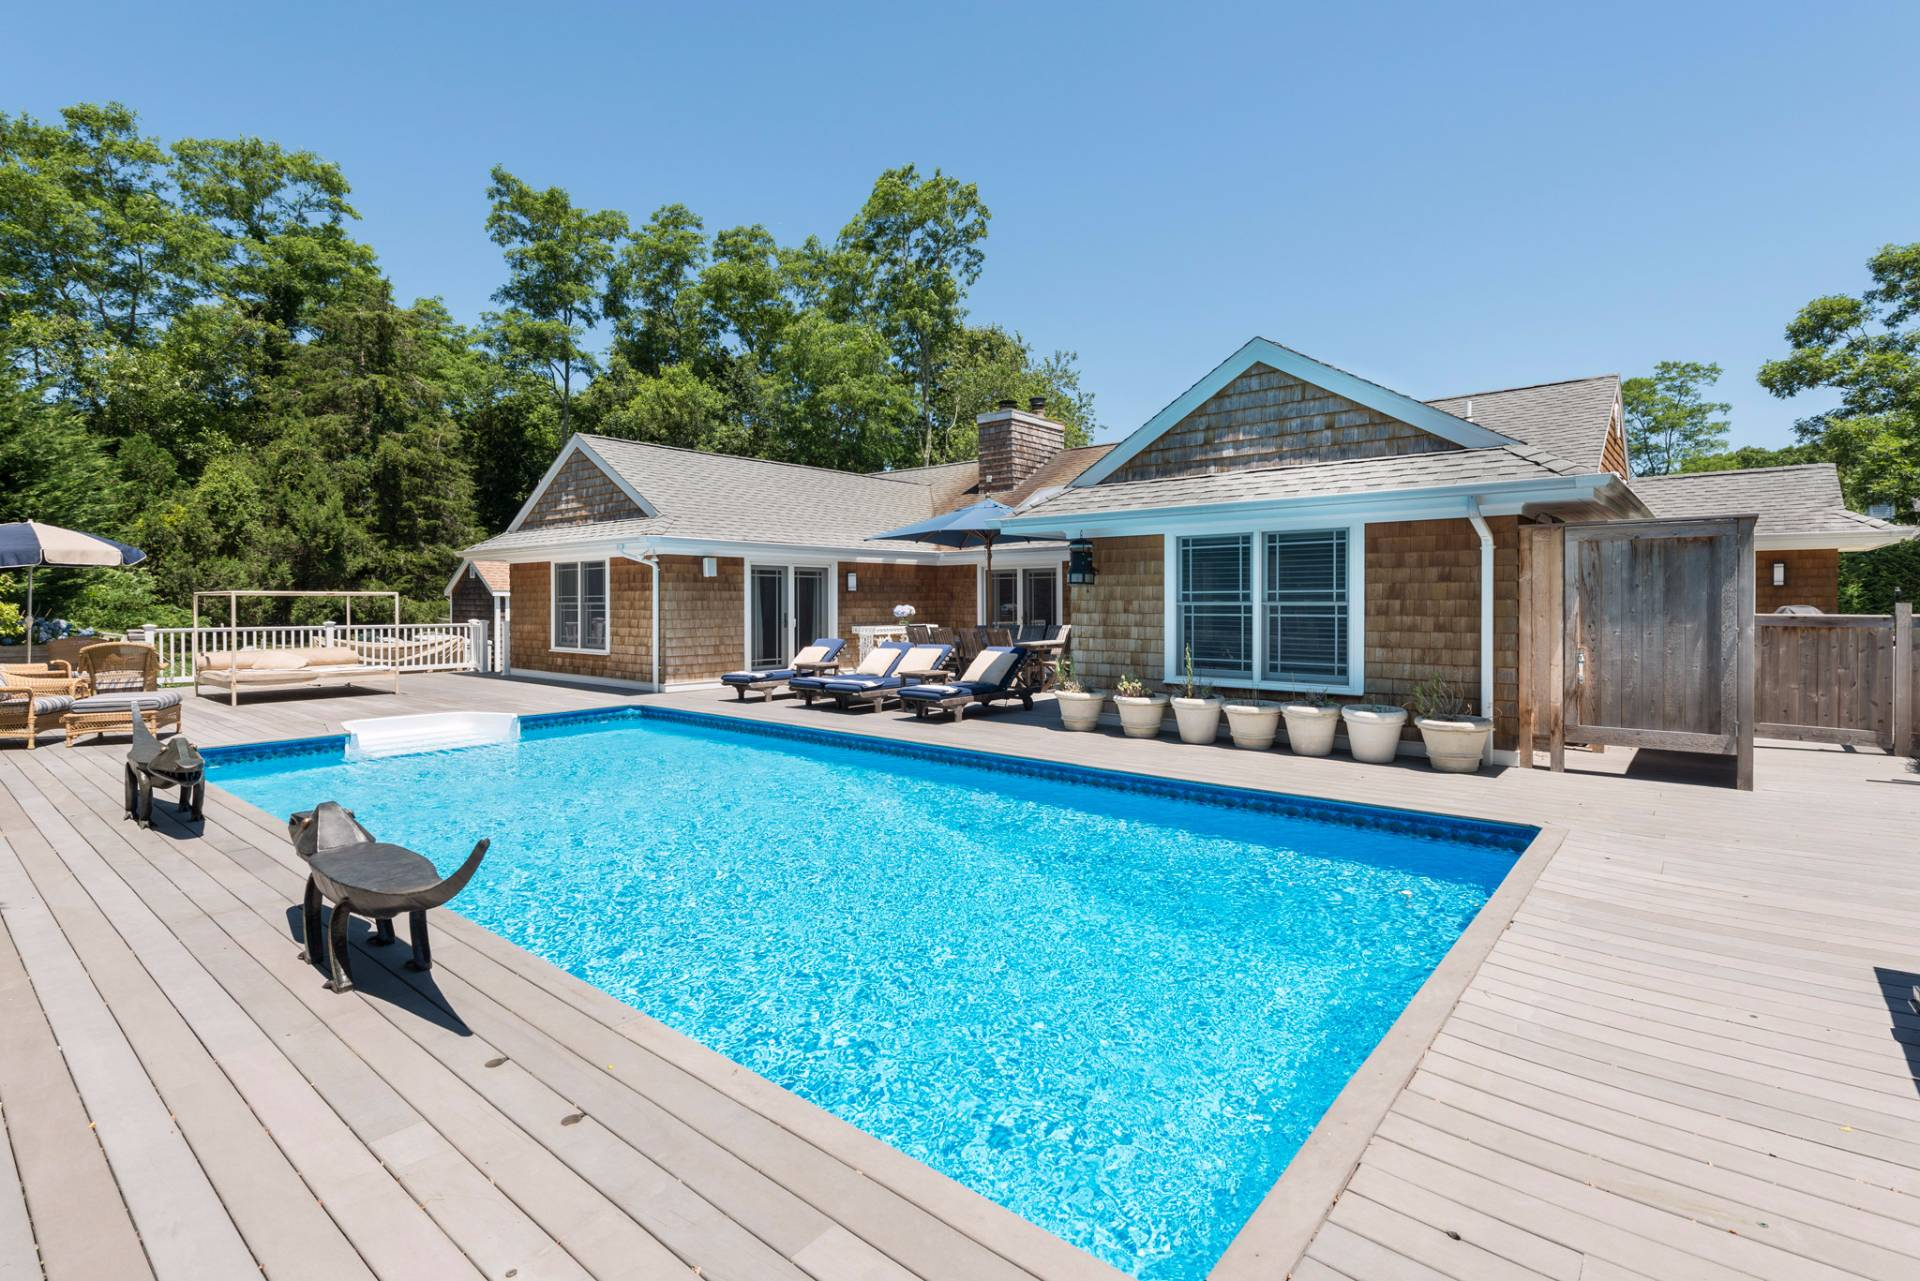 Single Family Home for Sale at Bridgehampton Bright And Beautiful 82 Beckys Path, Bridgehampton, New York